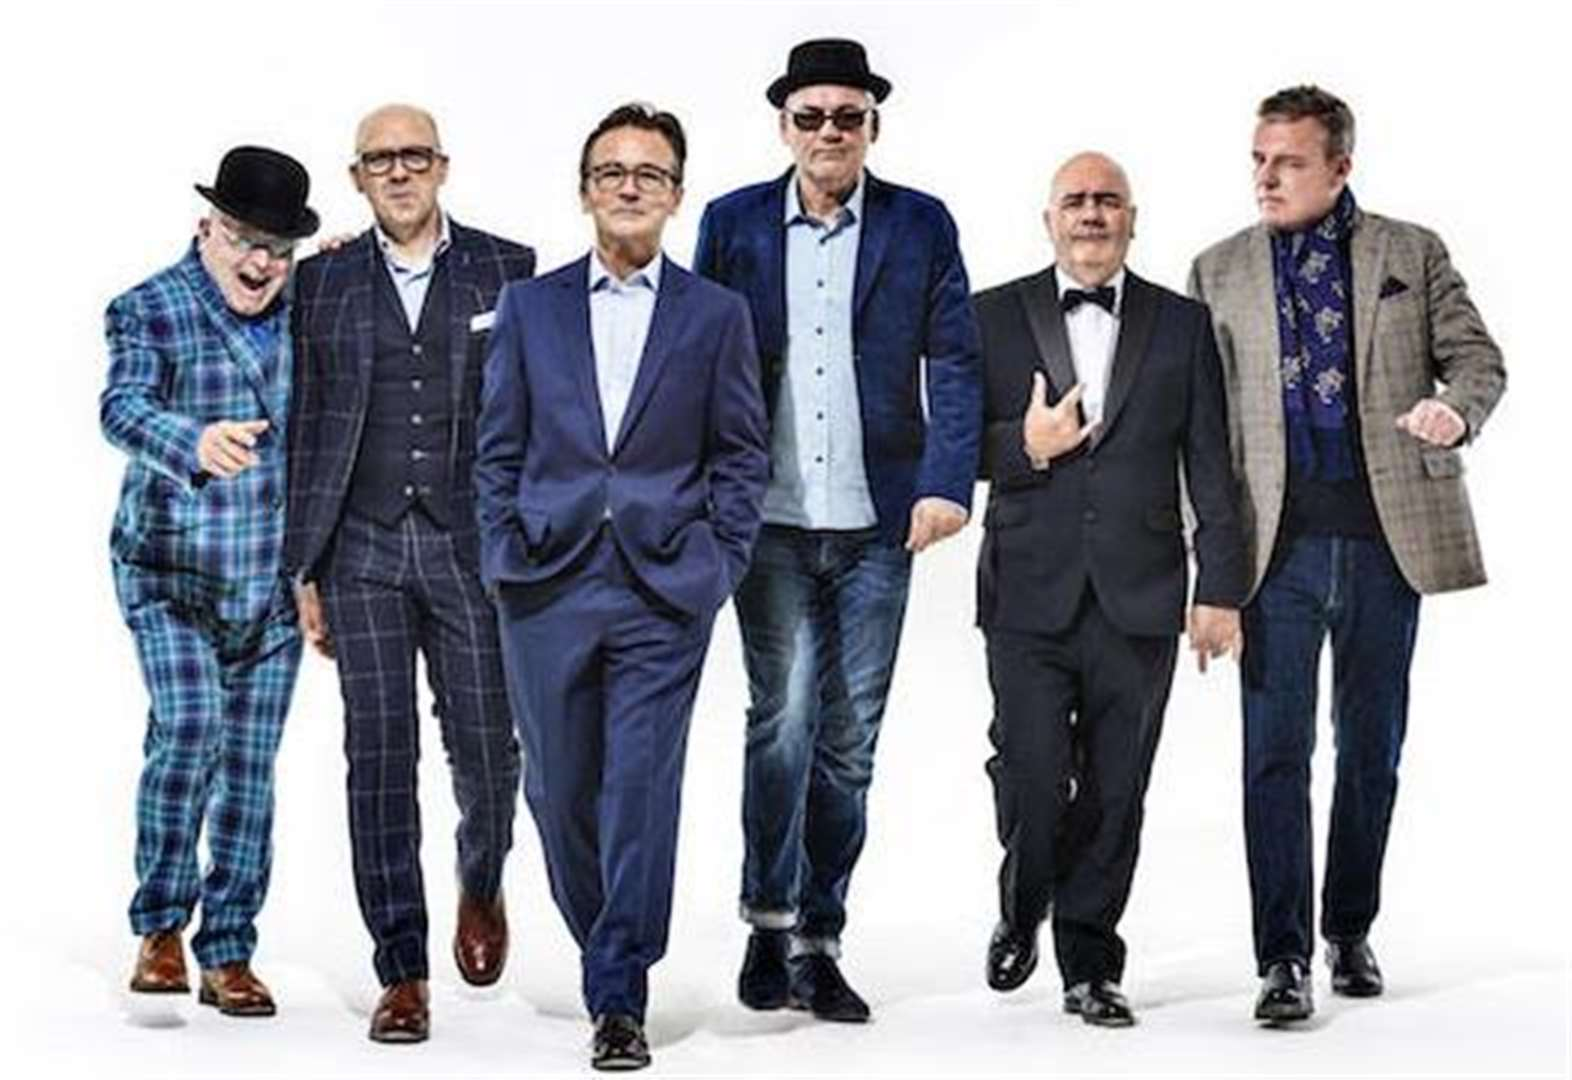 Madness set to headline Newmarket Nights in 2019